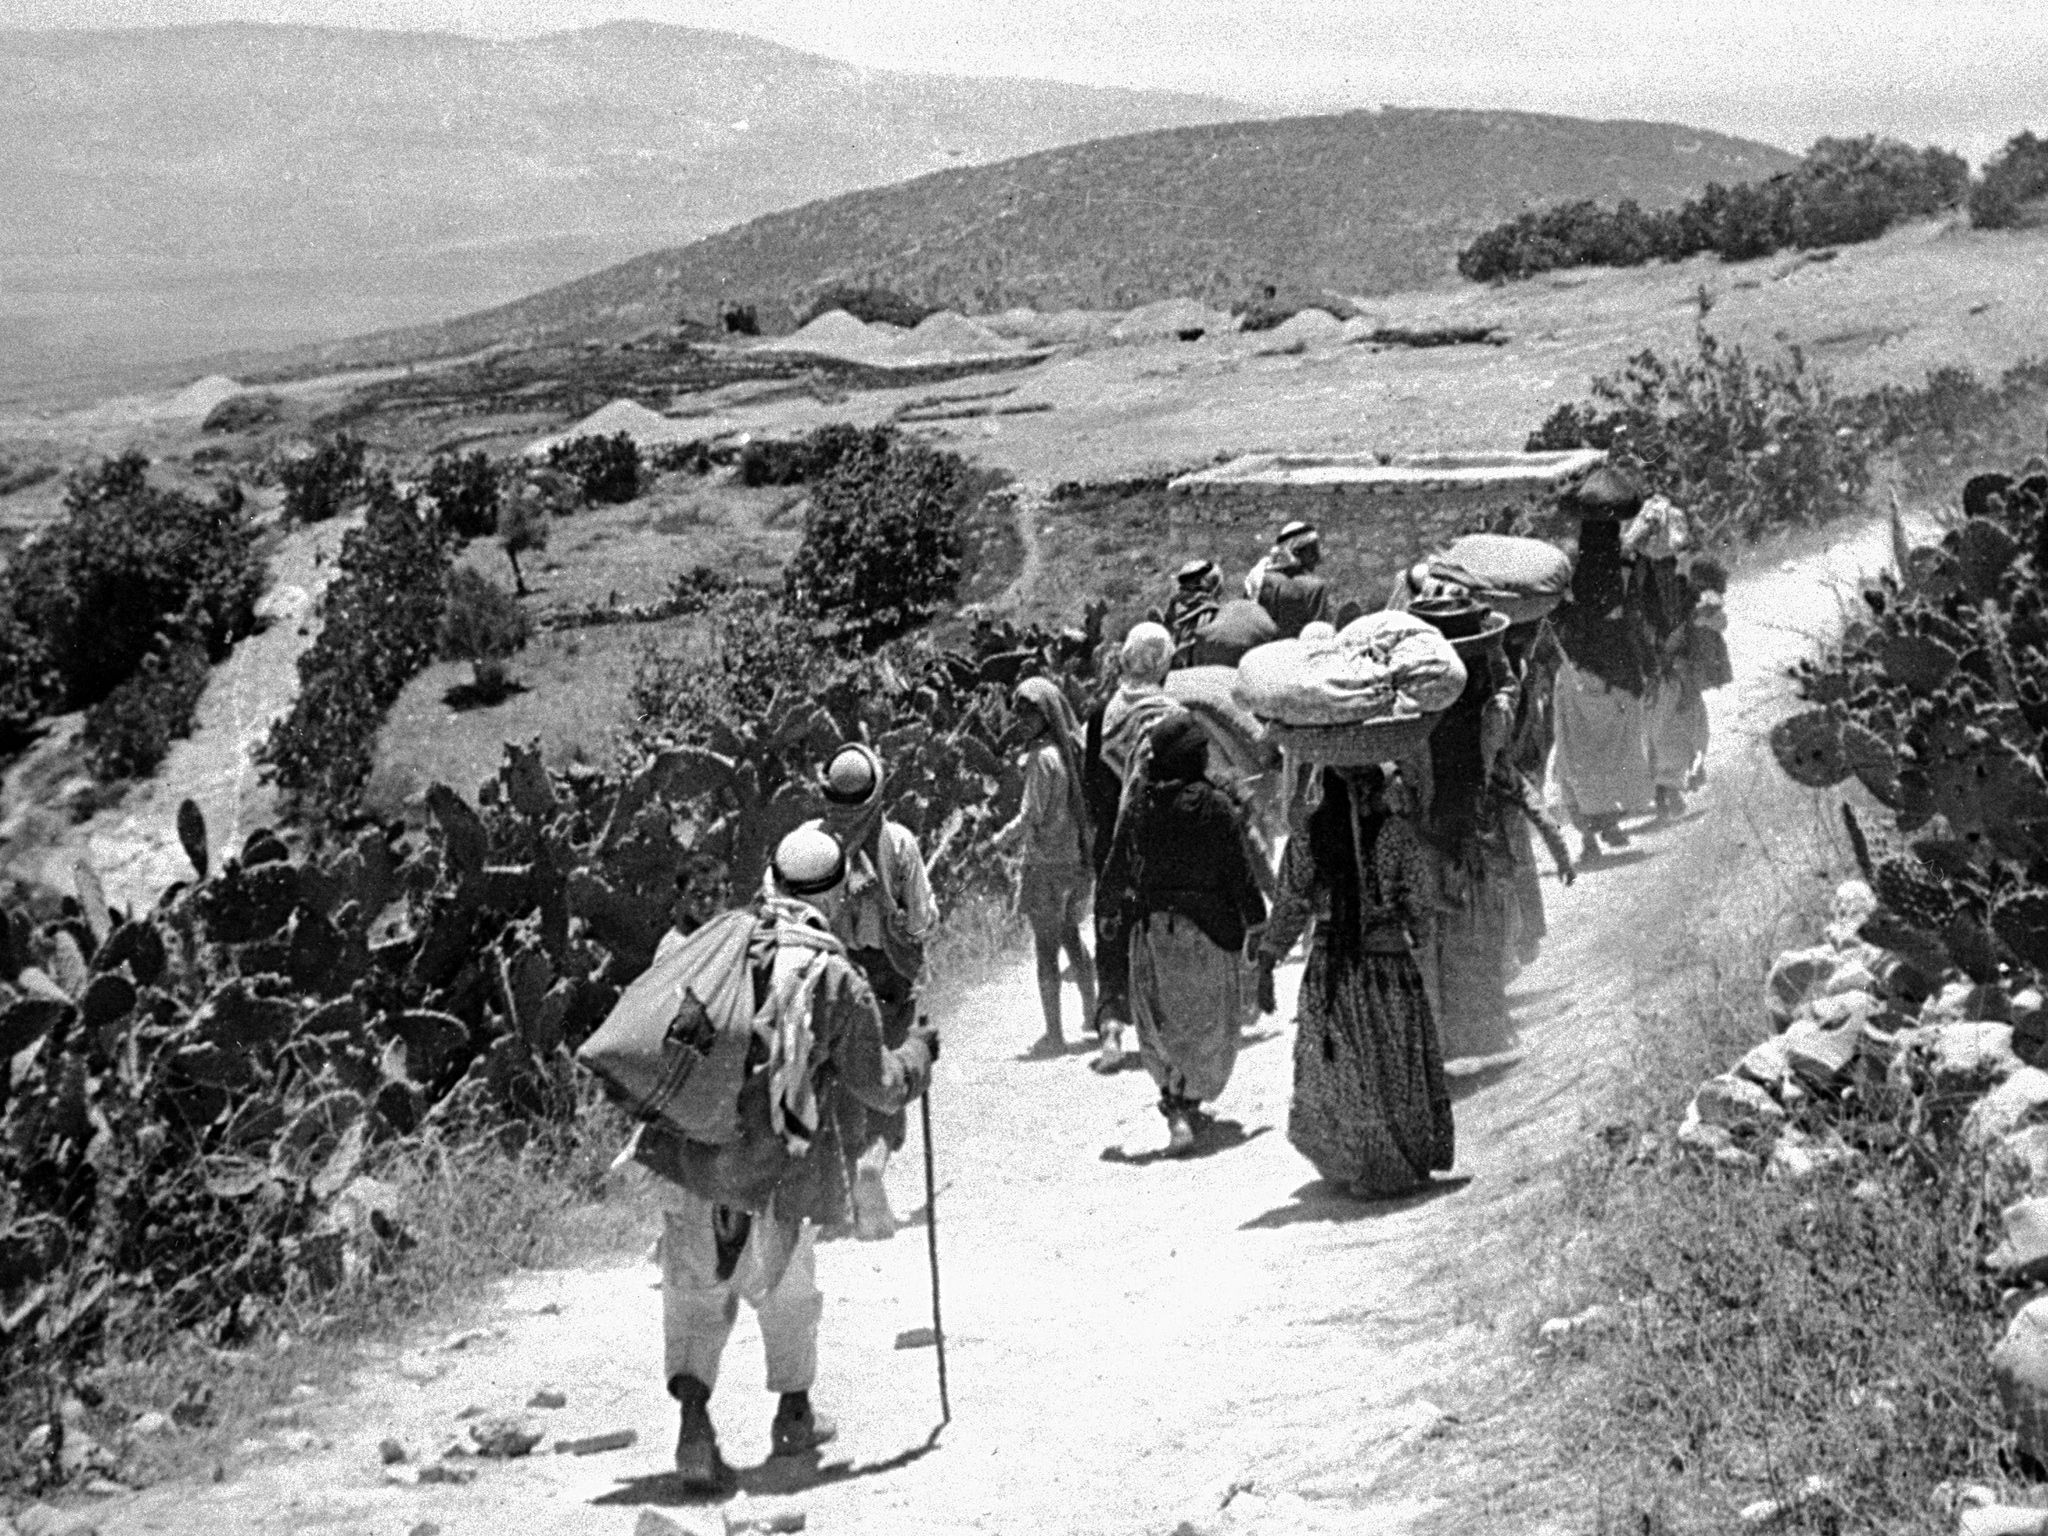 I24news Palestinians Lament 70 Years Since Un Partition